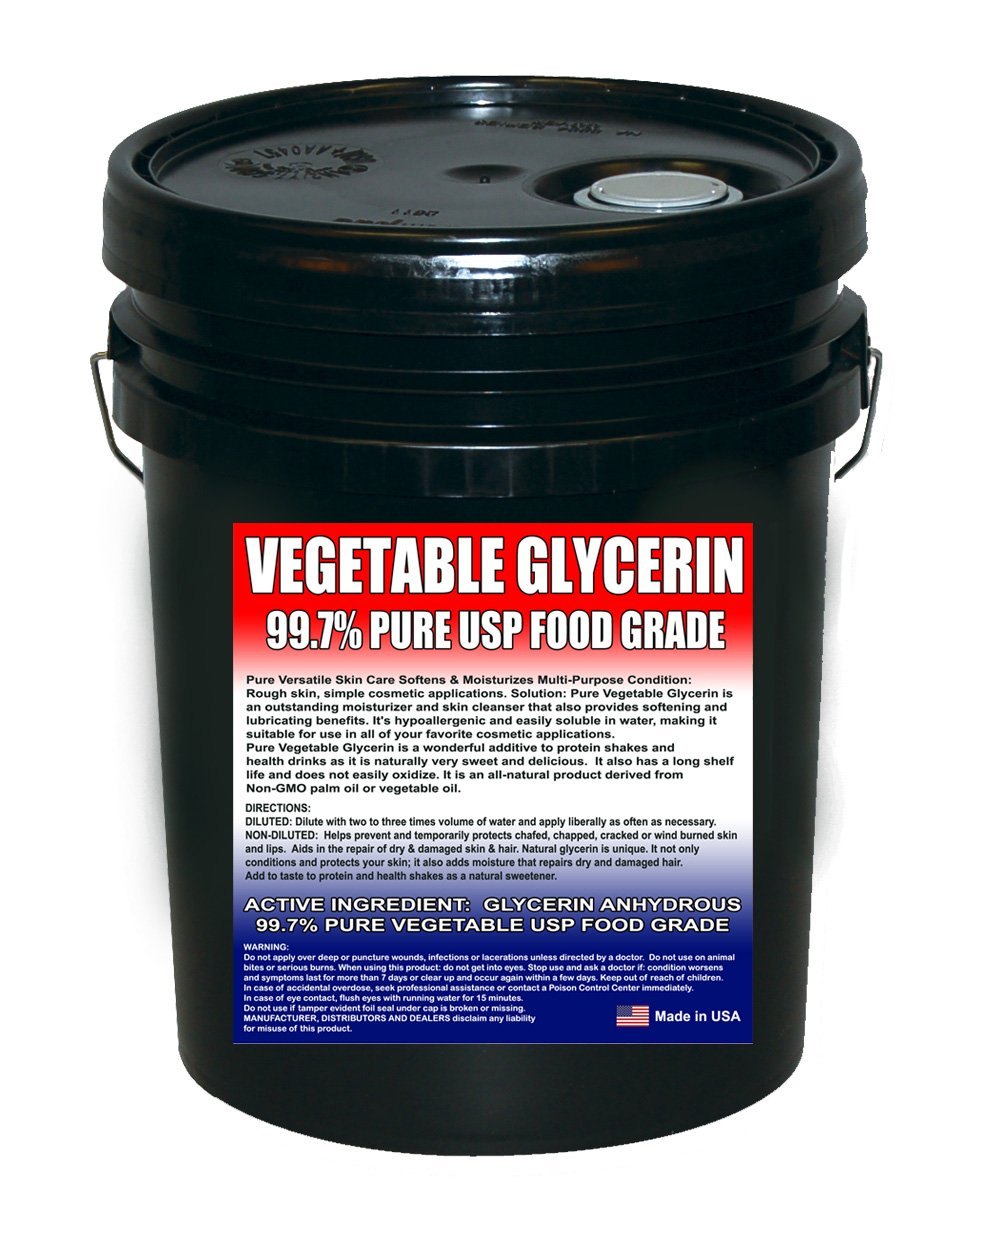 Vegetable Glycerine Kosher USP 99.7%+ Pure - Highest Quality and Perfect Sweetness - (5 Gallon Pail)